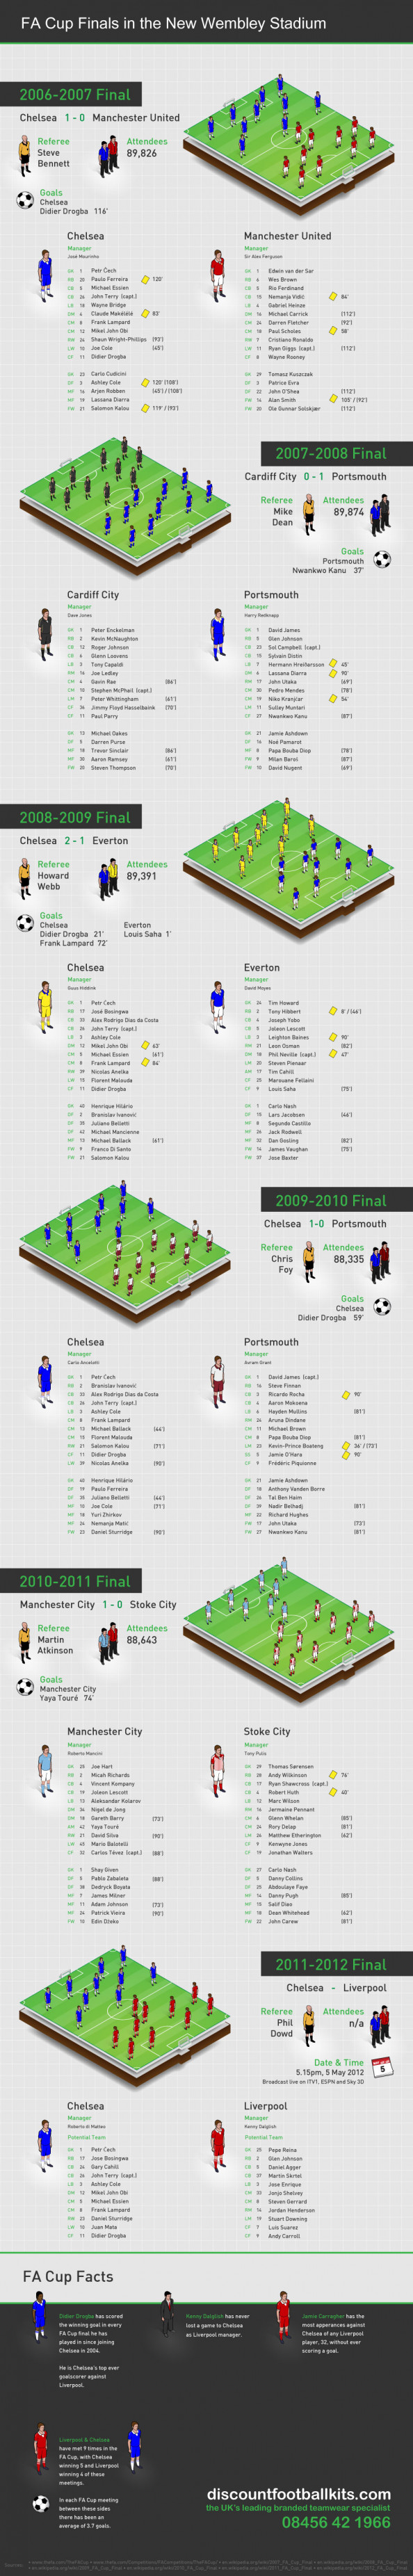 FA Cup Finals in the New Wembley Stadium Infographic